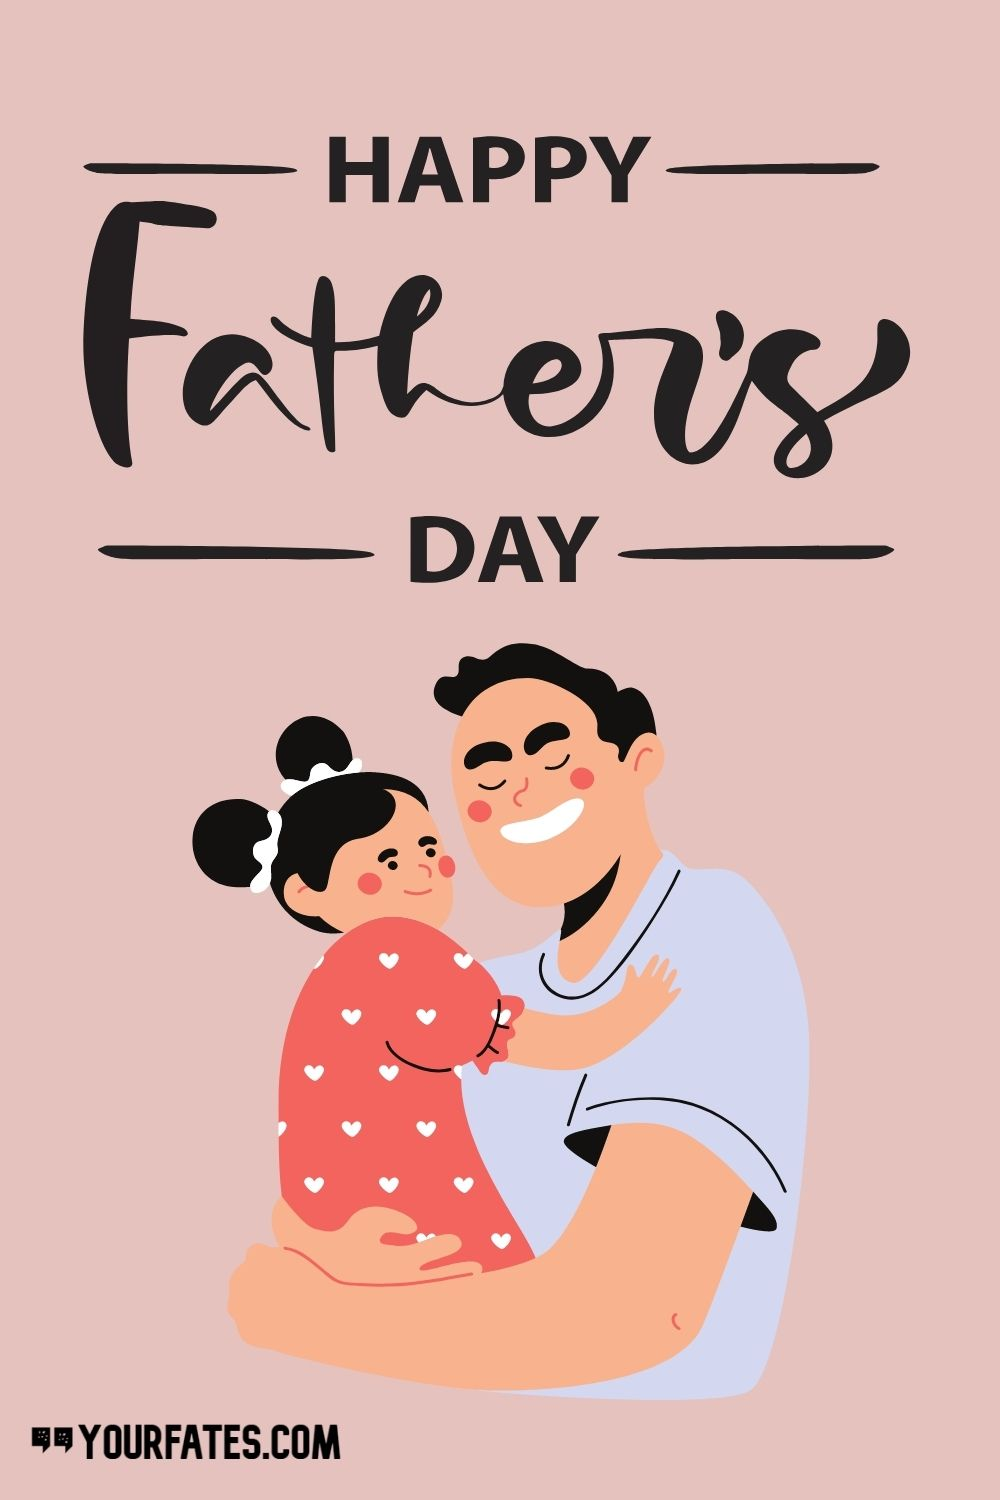 Happy Father's Day eCard